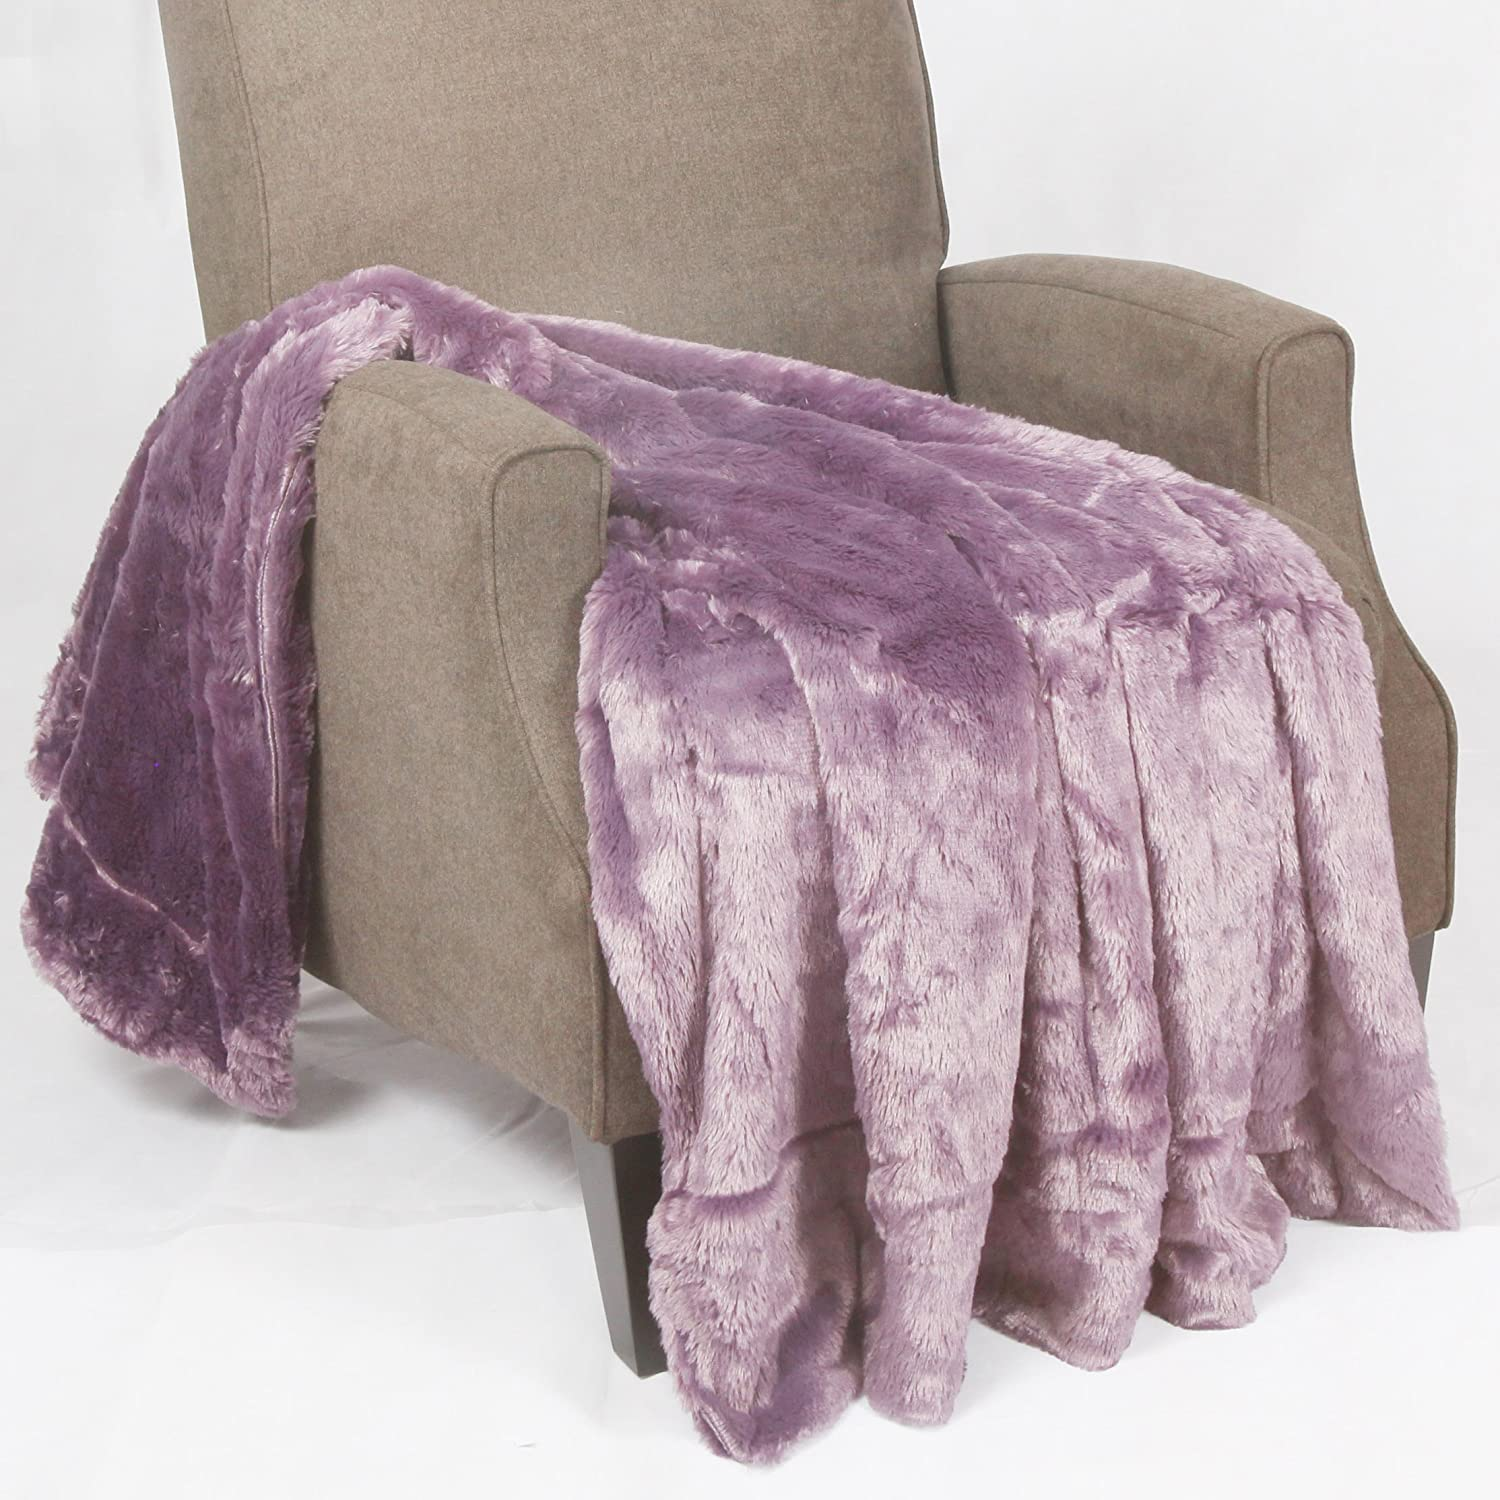 amazoncom boon double sided faux fur bedcouch throw blanket   - amazoncom boon double sided faux fur bedcouch throw blanket  x dusty purple home  kitchen